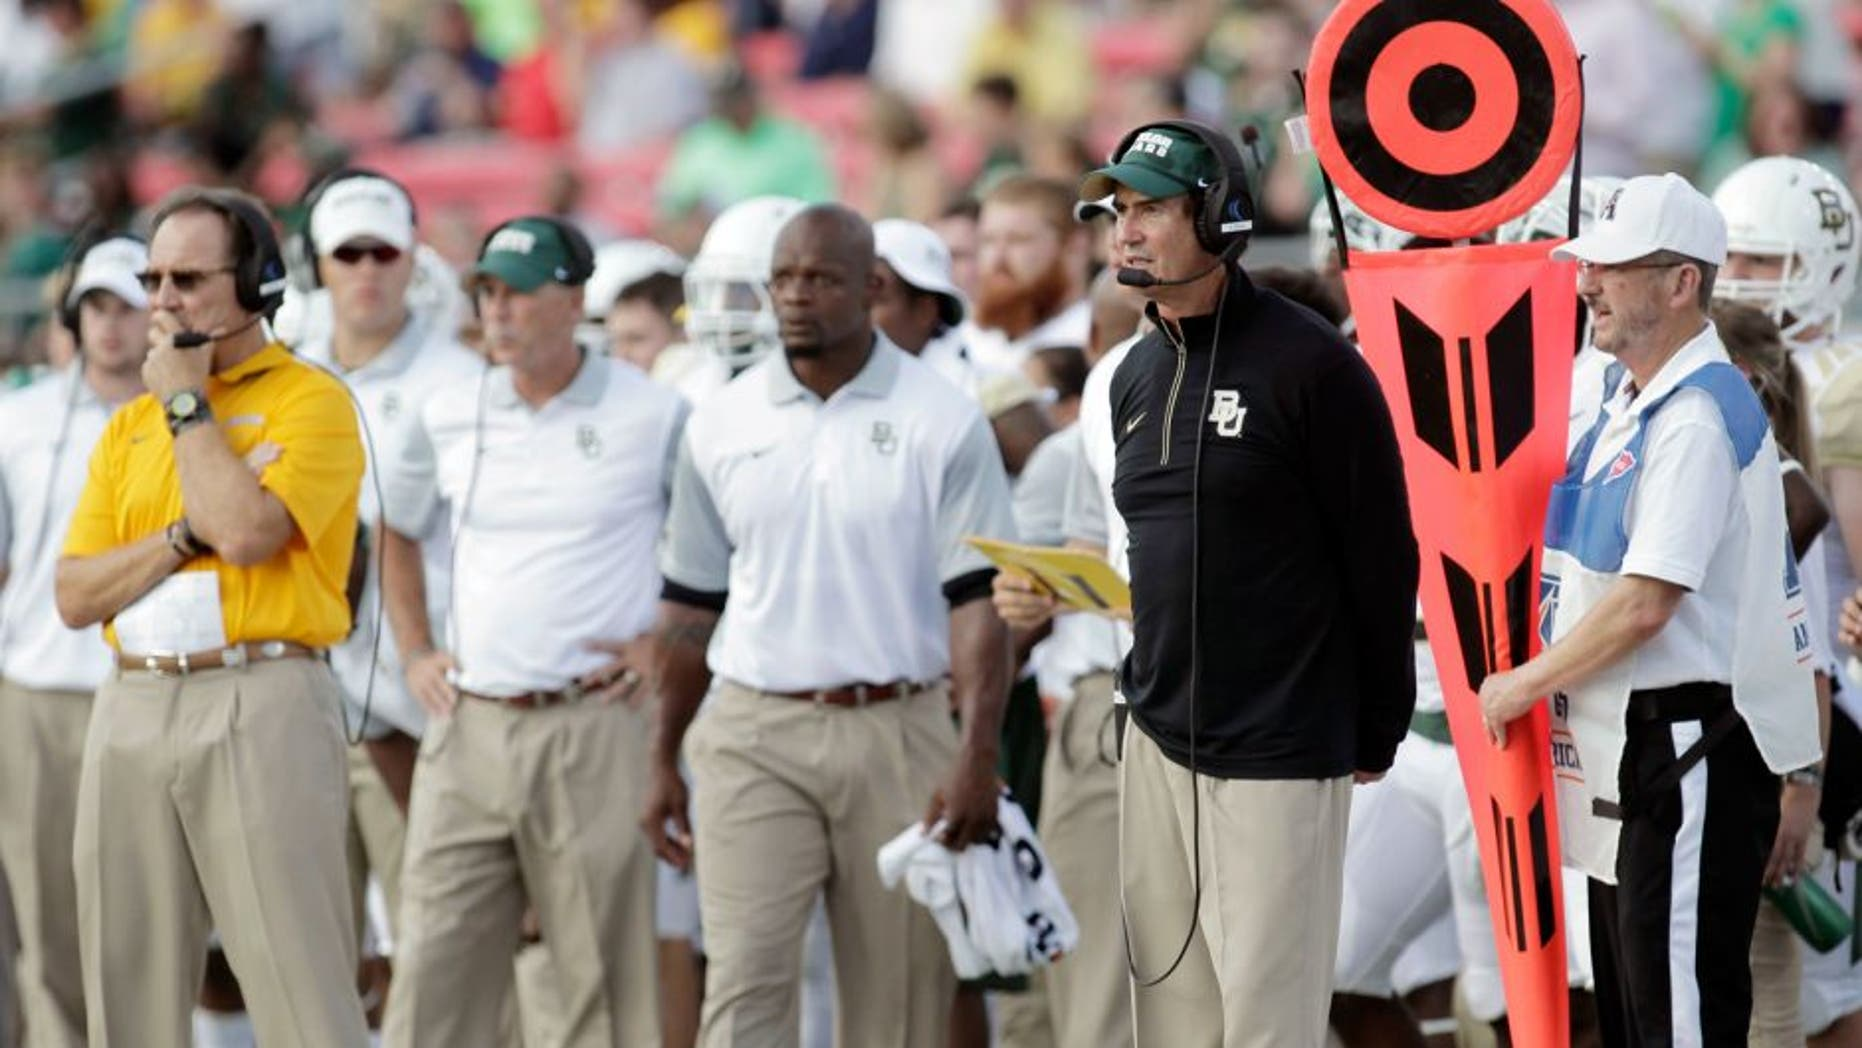 Sep 4, 2015; Dallas, TX, USA; Baylor Bears head coach Art Briles on the sidelines against Southern Methodist University at Gerald J. Ford Stadium. Mandatory Credit: Erich Schlegel-USA TODAY Sports